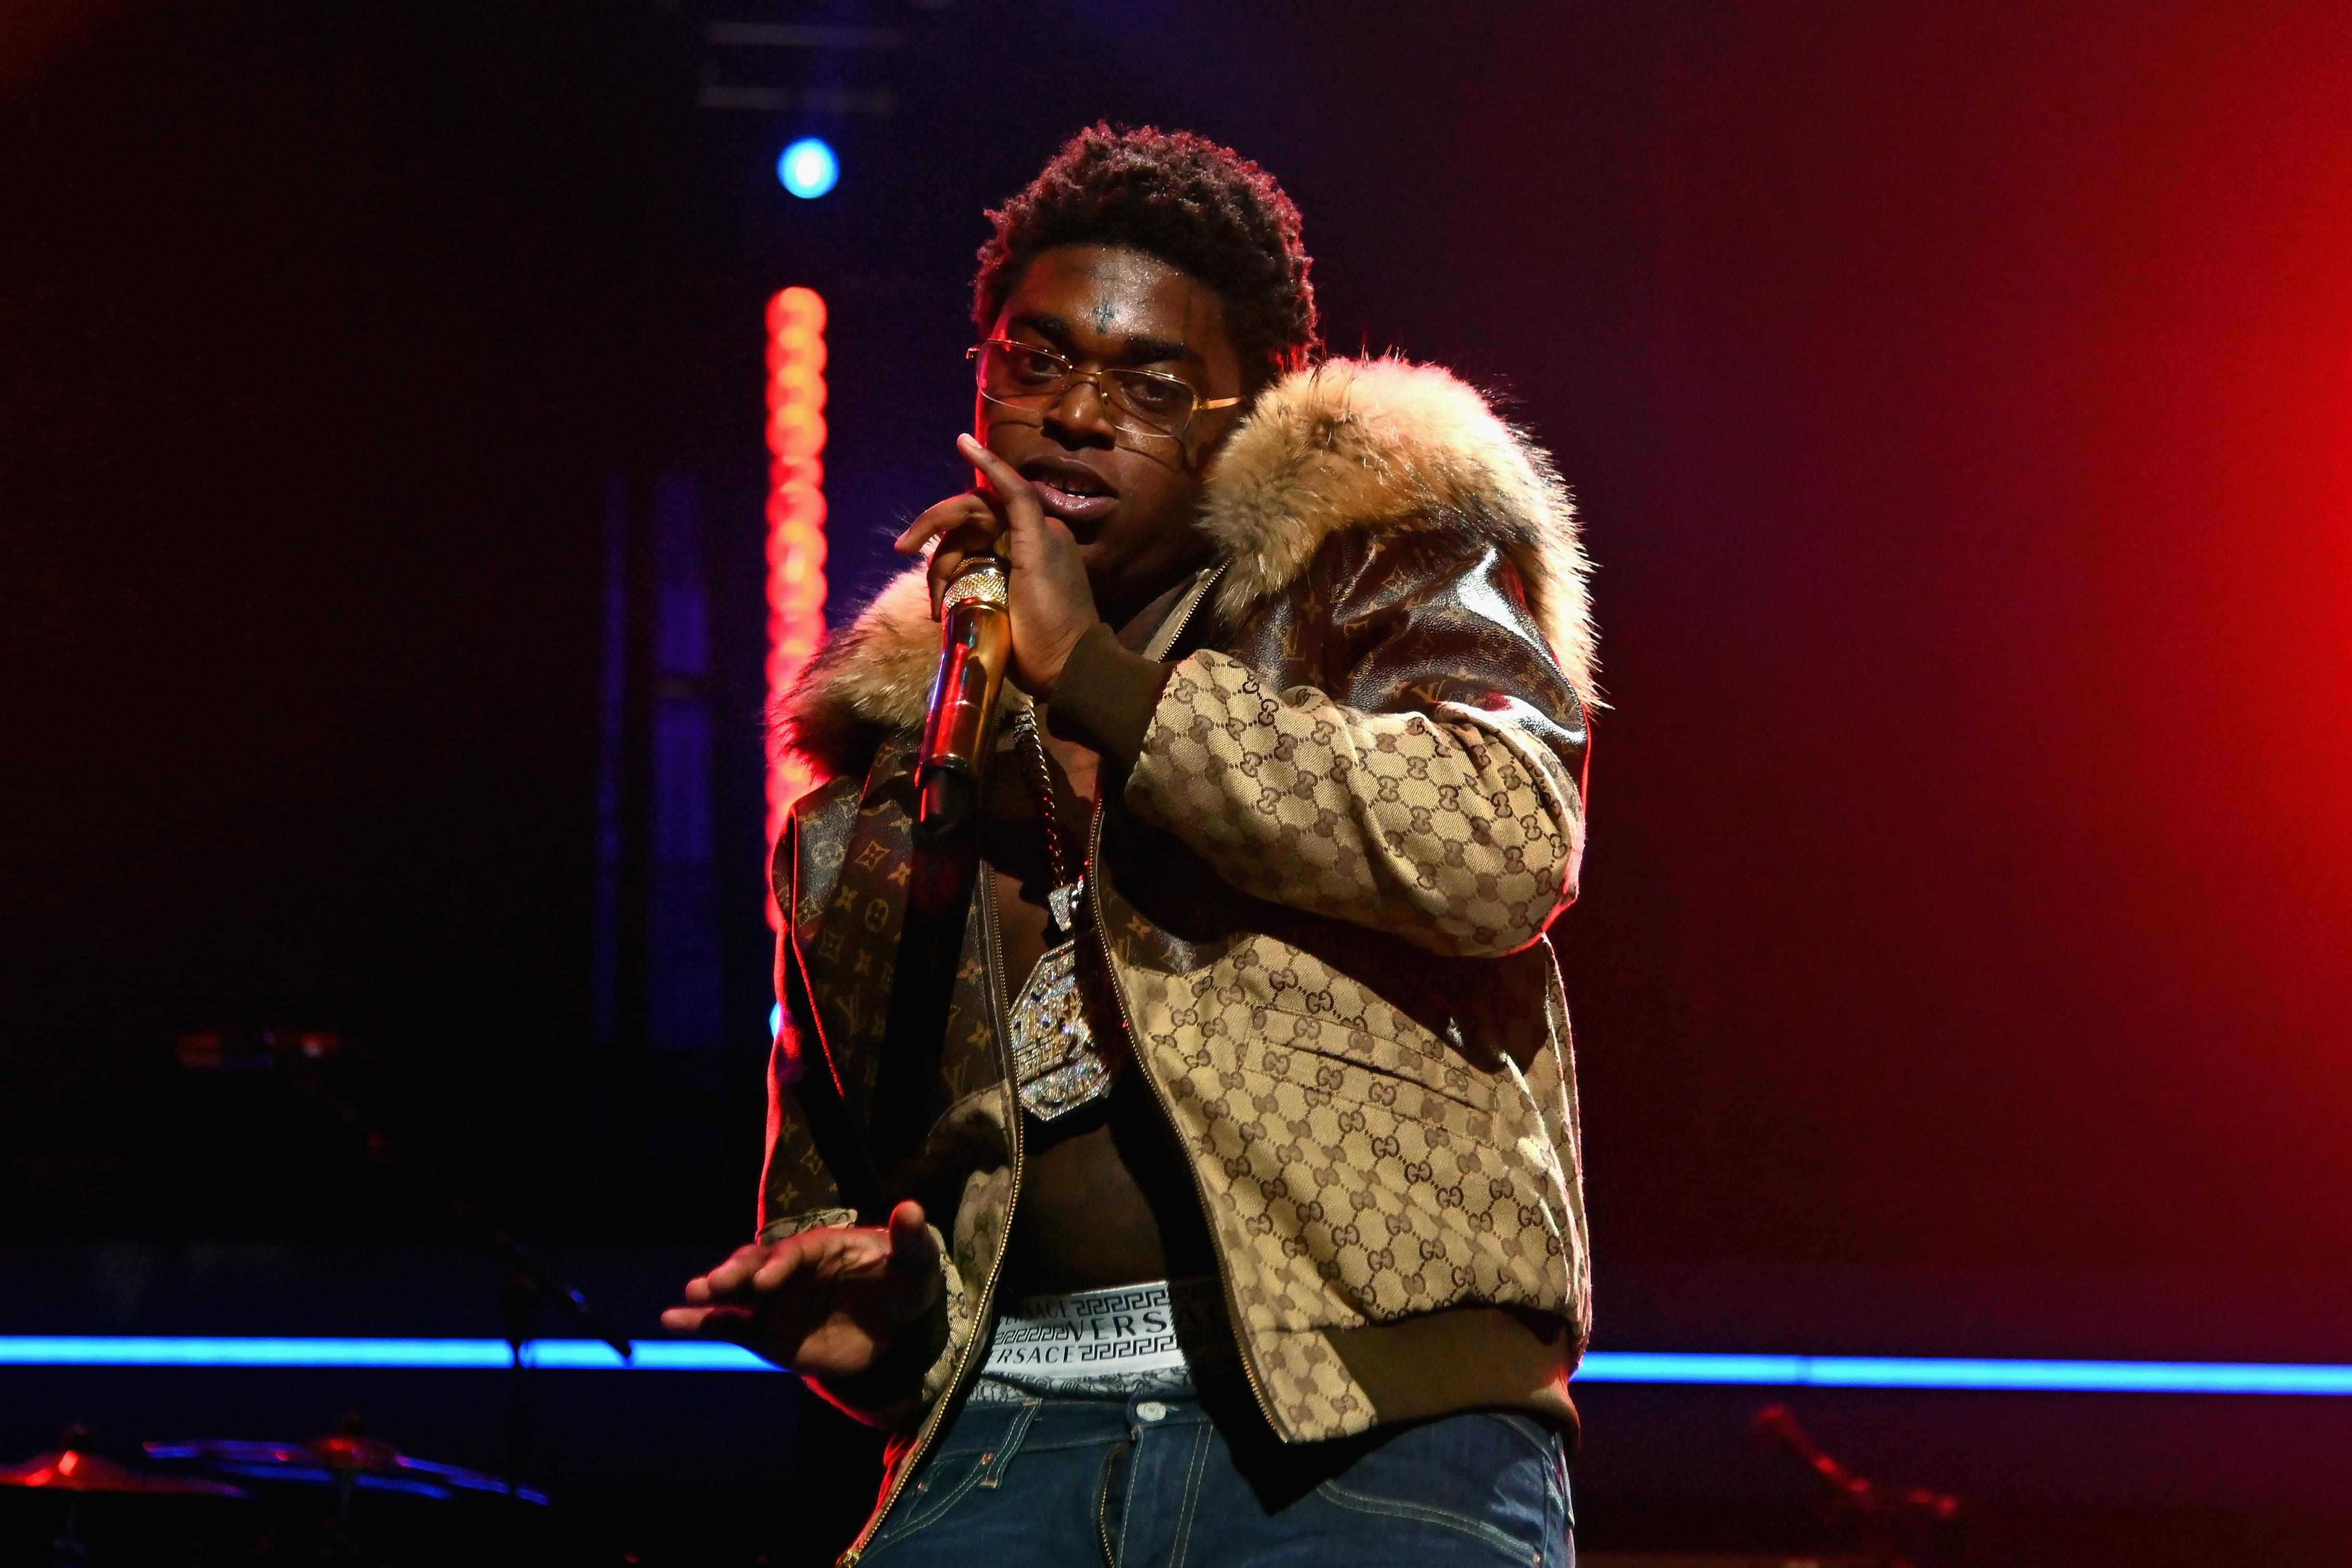 Kodak Black Proposes With Ring Pop!?